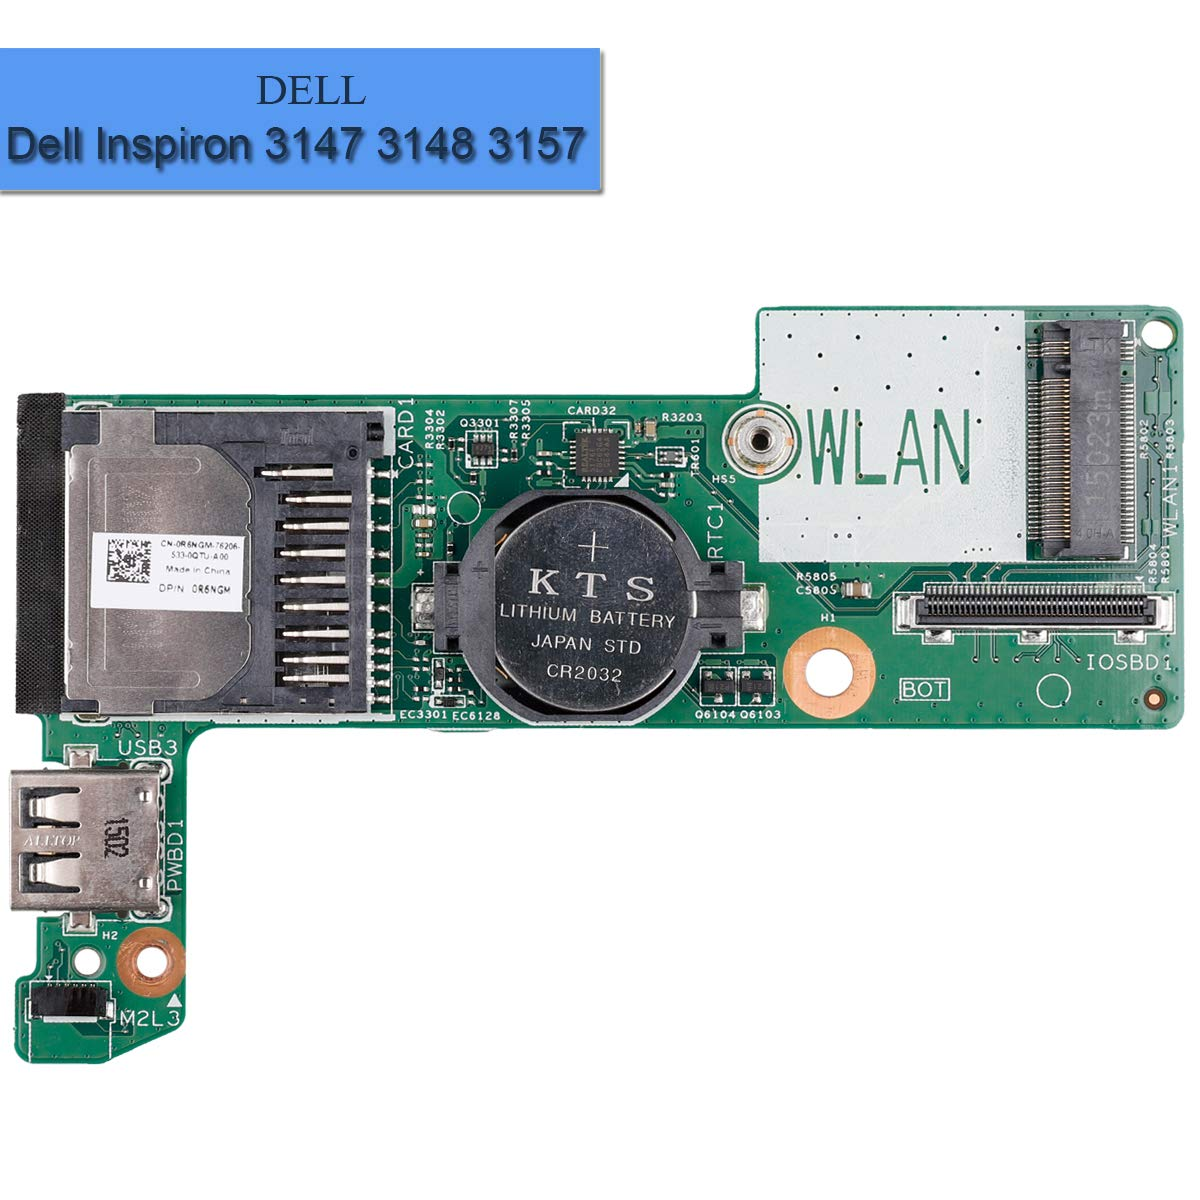 Replacement Laptop USB Card Reader Board R6NGM 0R6NGM X2NJX Compatible with Dell Inspiron 3147 3148 3157 7348 7352 7558